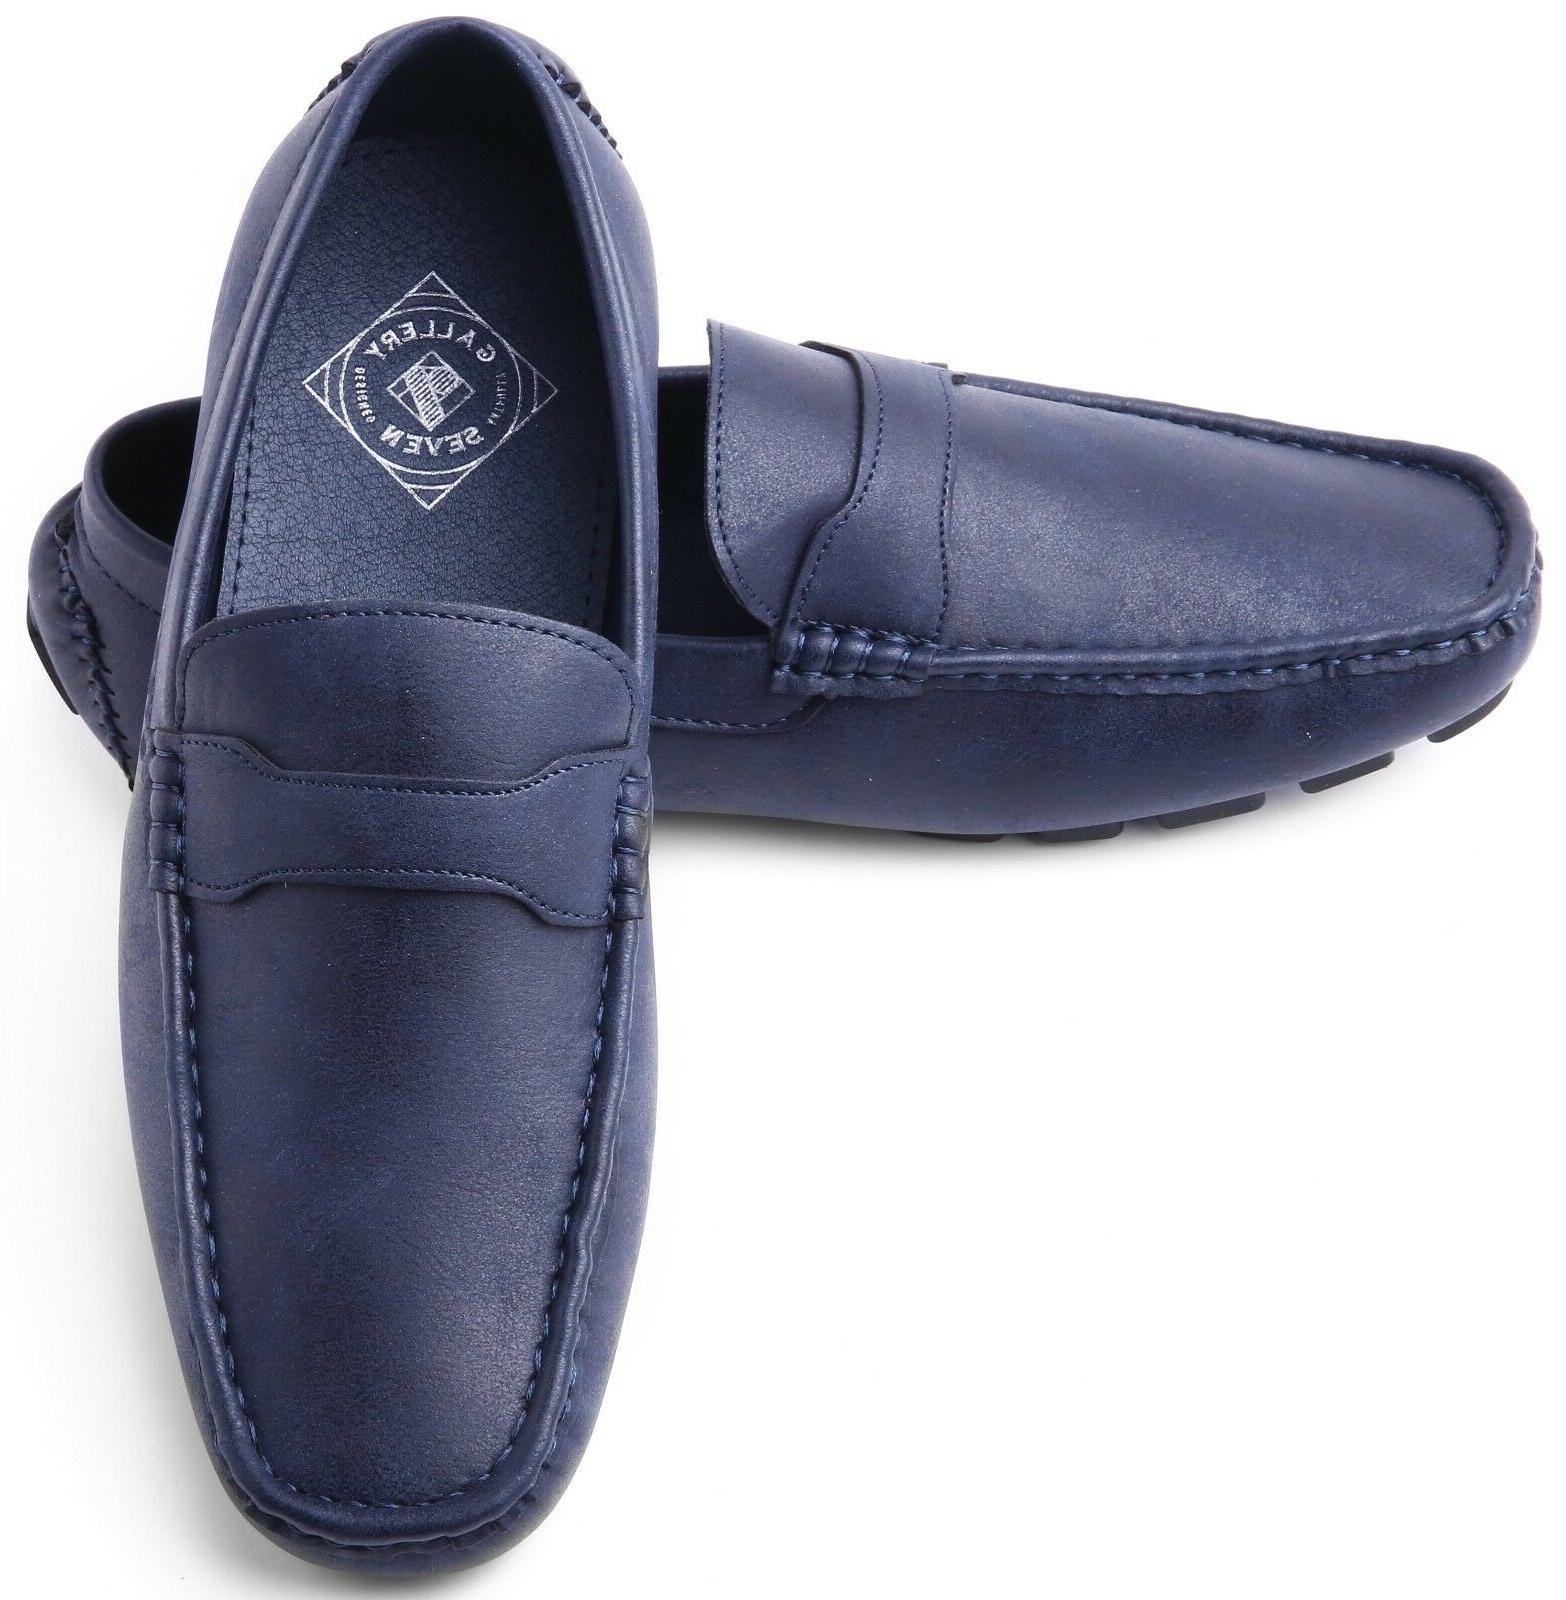 Gallery Seven Driving for Casual Moccasin